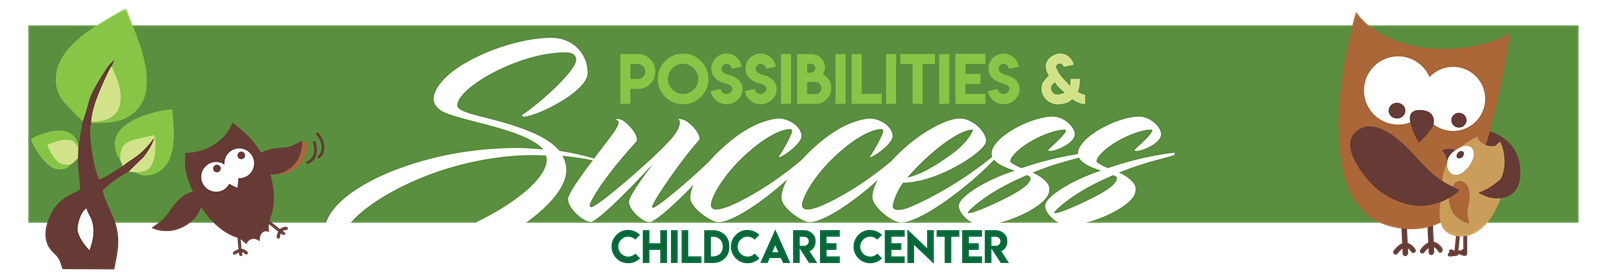 Possibilities & Success Childcare Image Banner